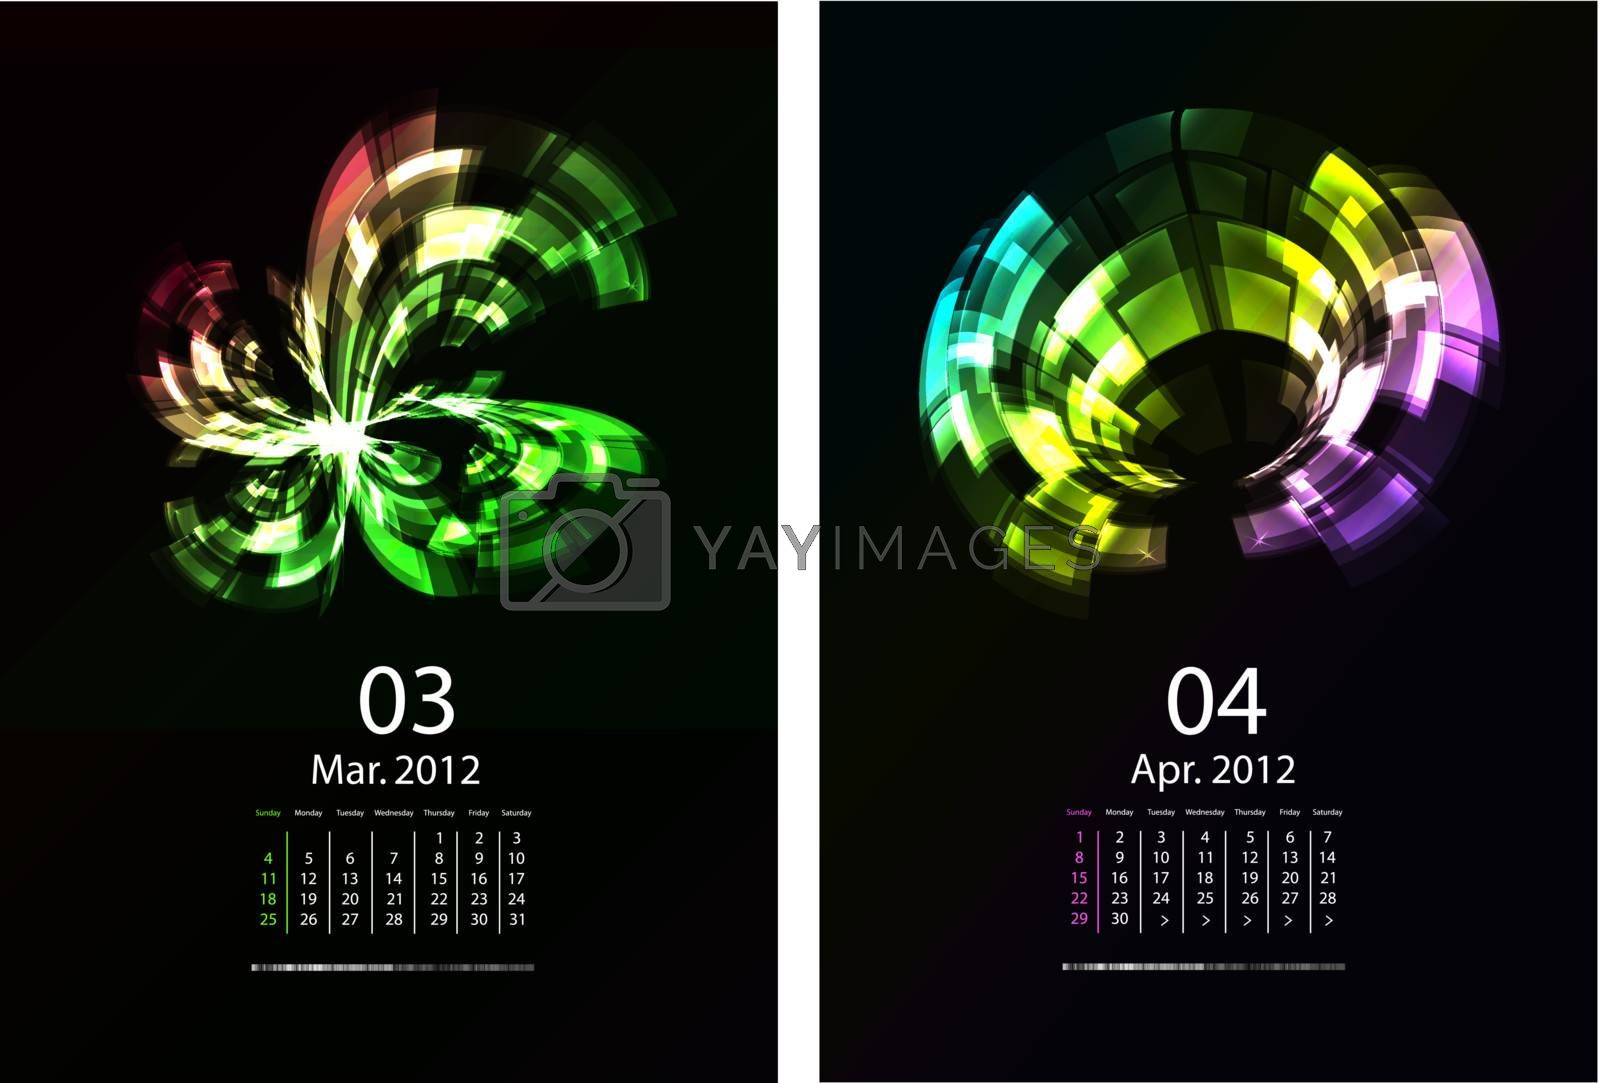 A Series Of Calendars Magic Light. March and April 2012